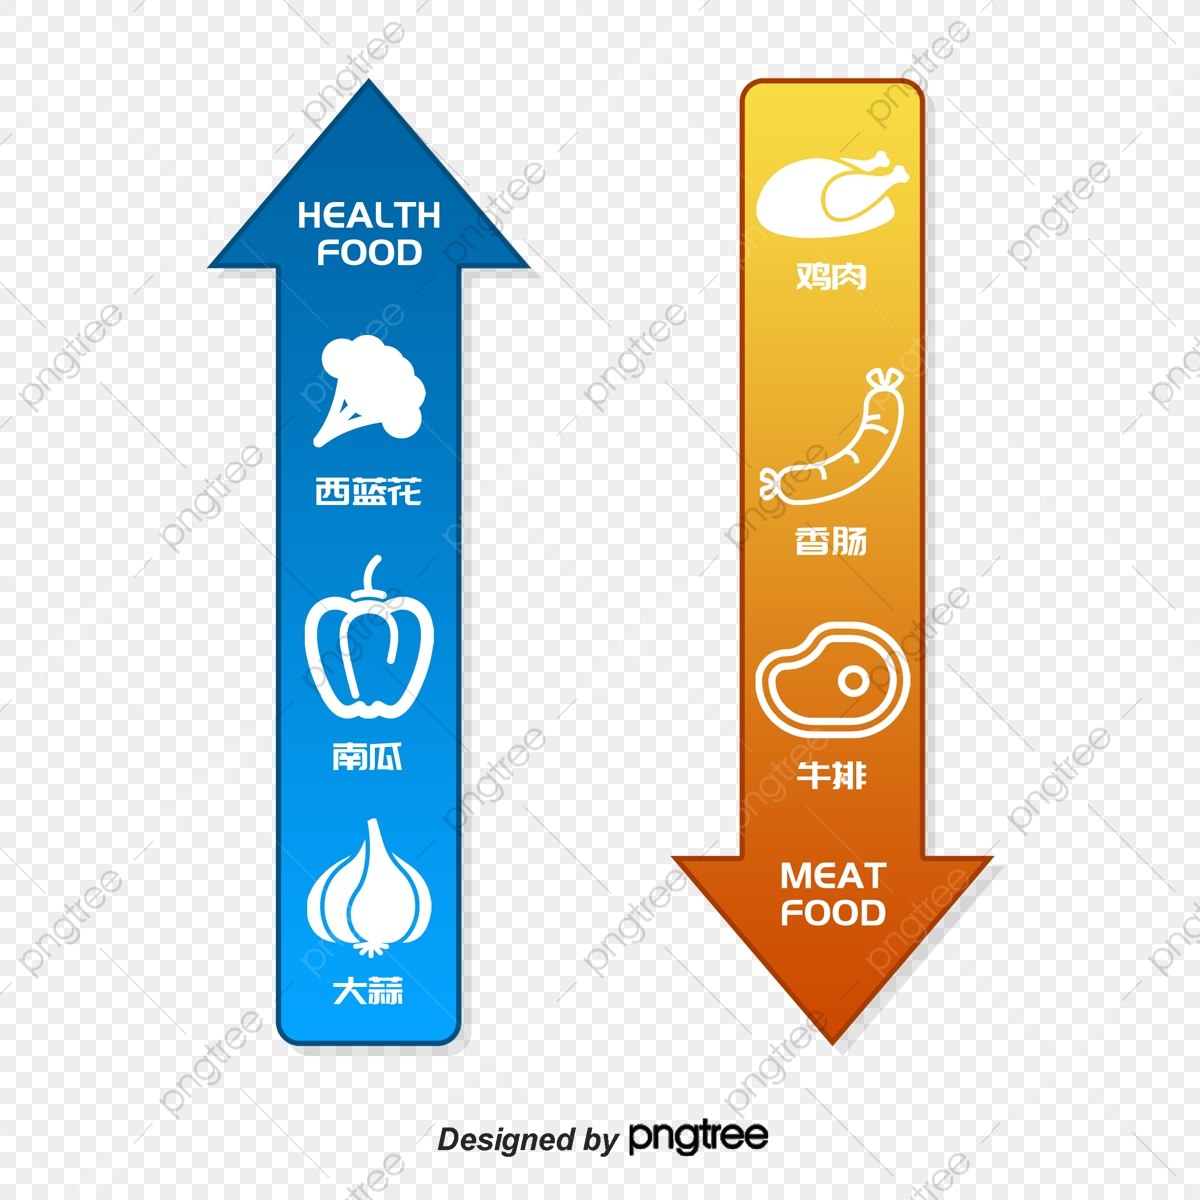 Healthy Food And Junk Food Chart Food Clipart Vector Health Png Transparent Clipart Image And Psd File For Free Download